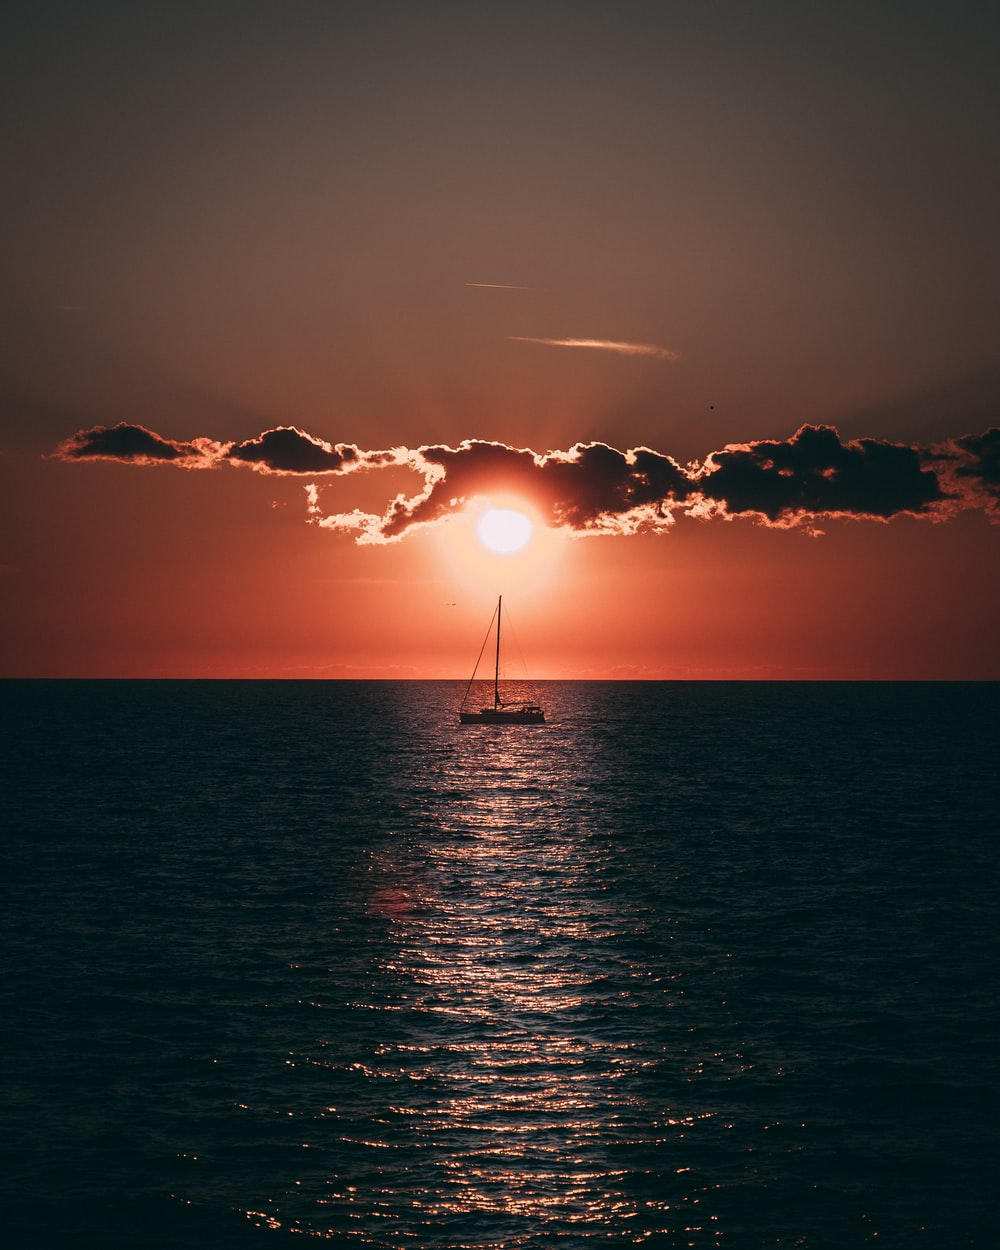 sailboat in sea during golden hour